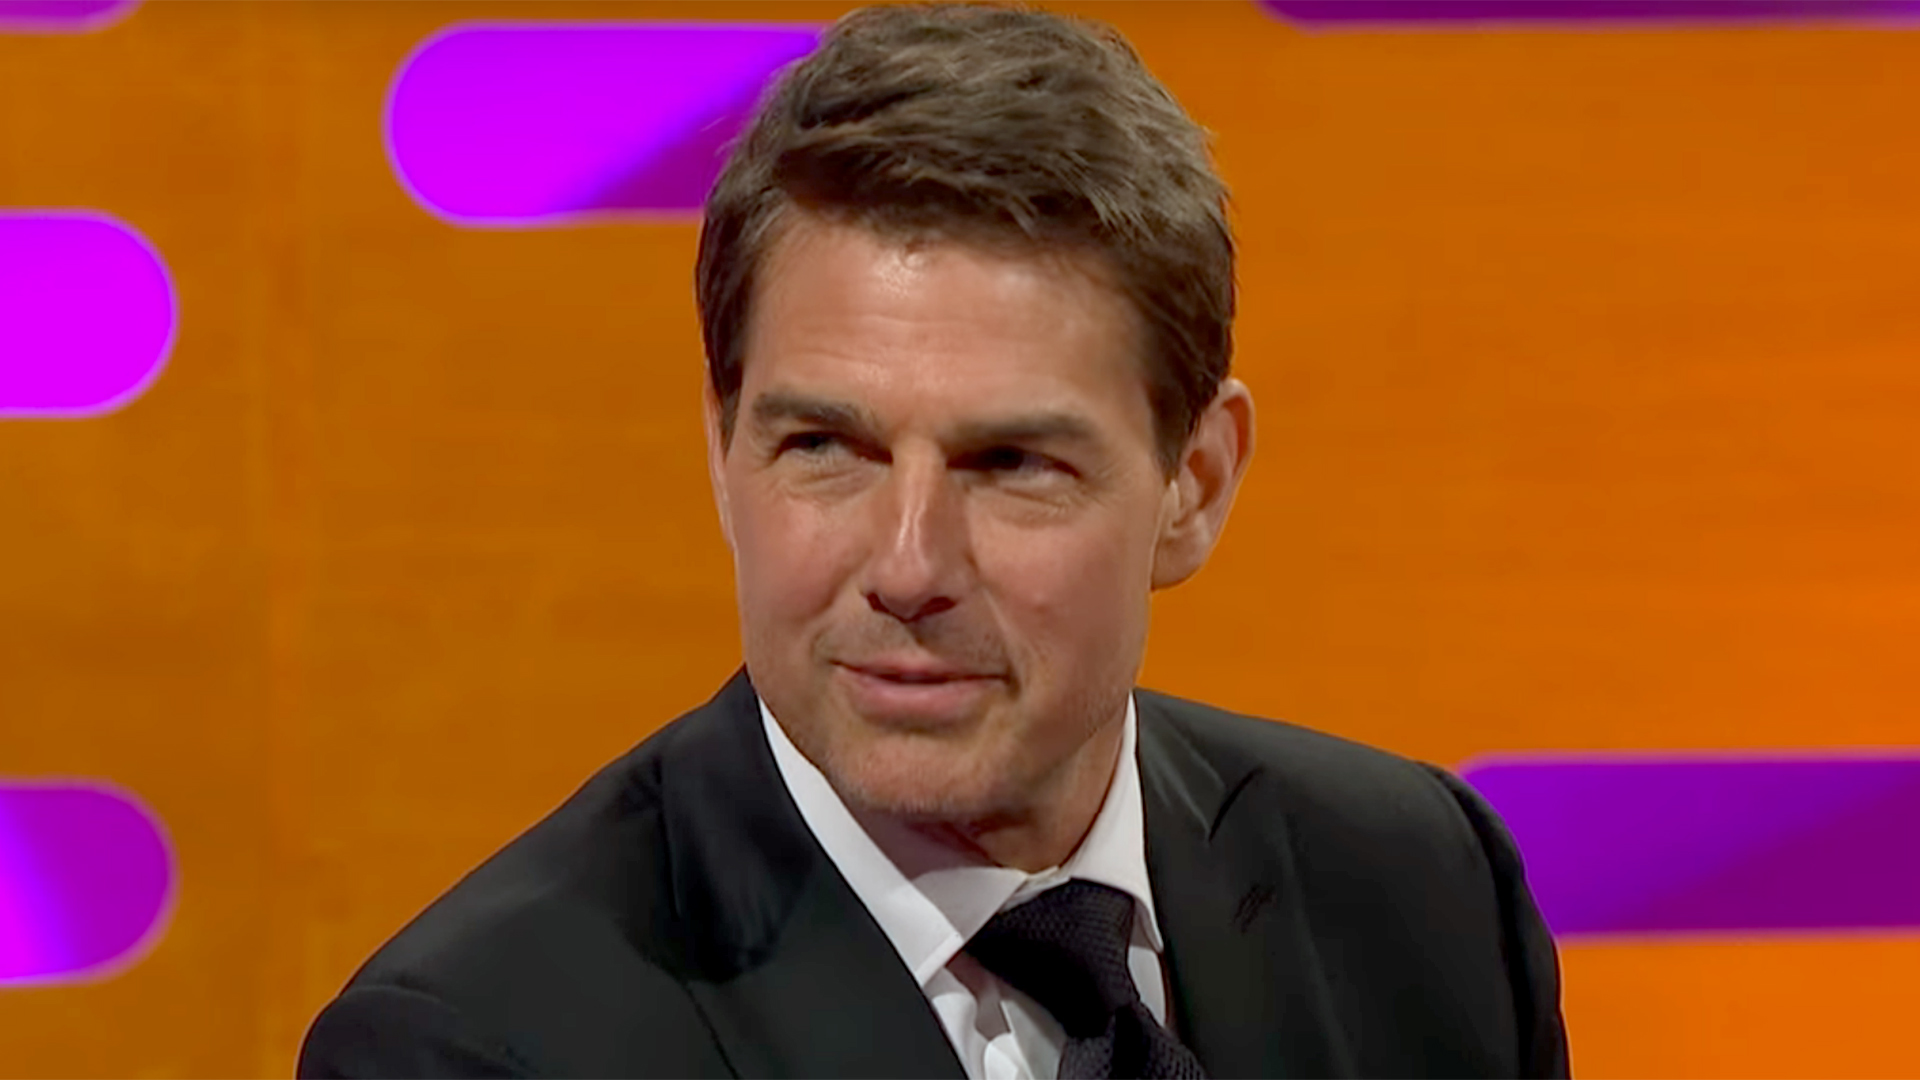 Tom Cruise S Co Stars Can T Handle Footage Of Him Breaking Ankle On Set